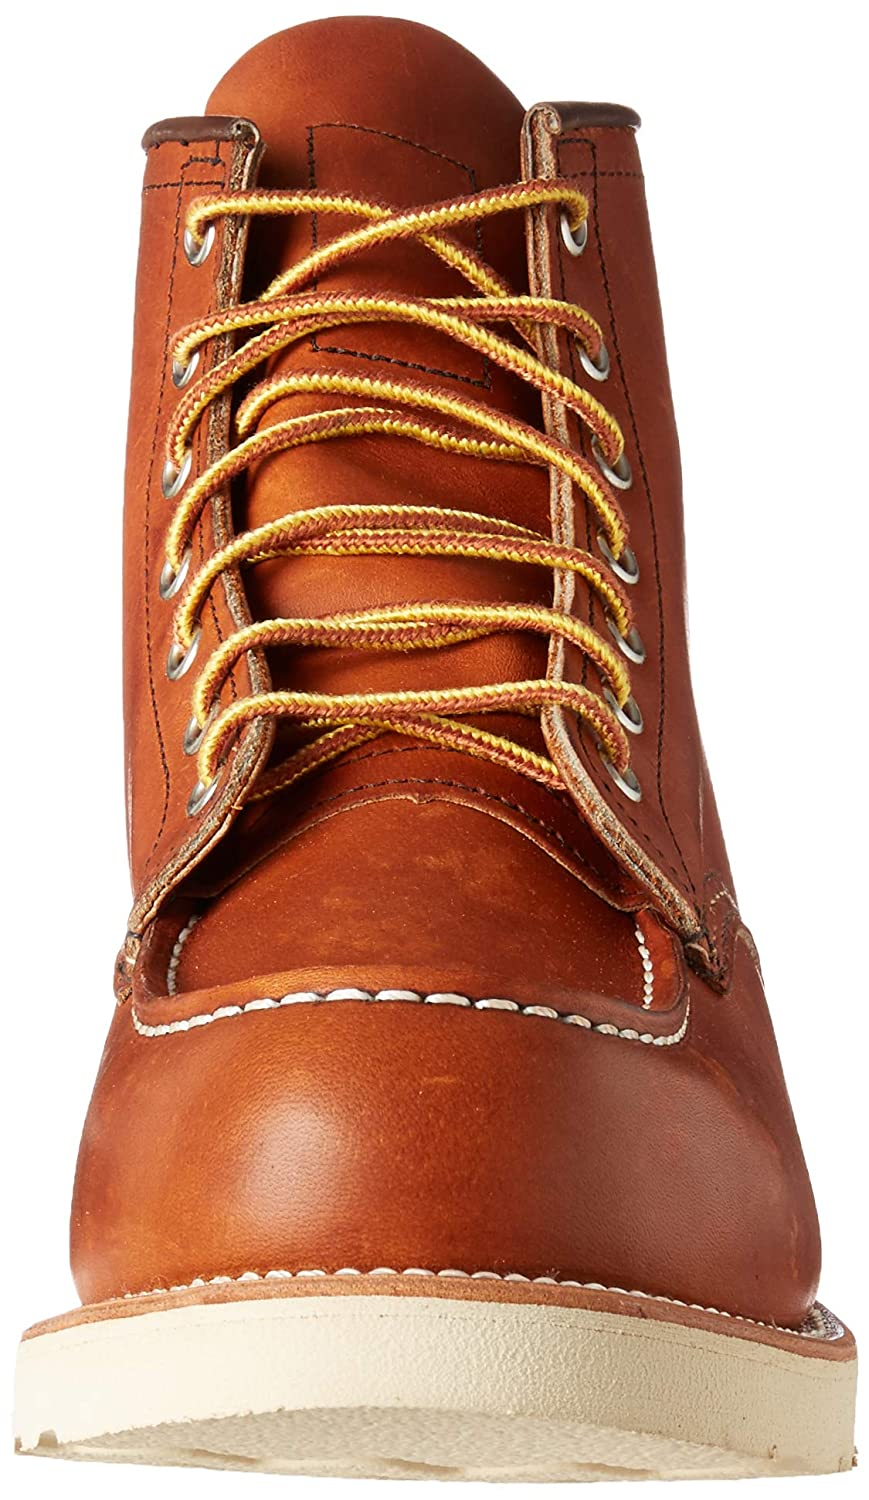 Red Wing 8173 Boots homme